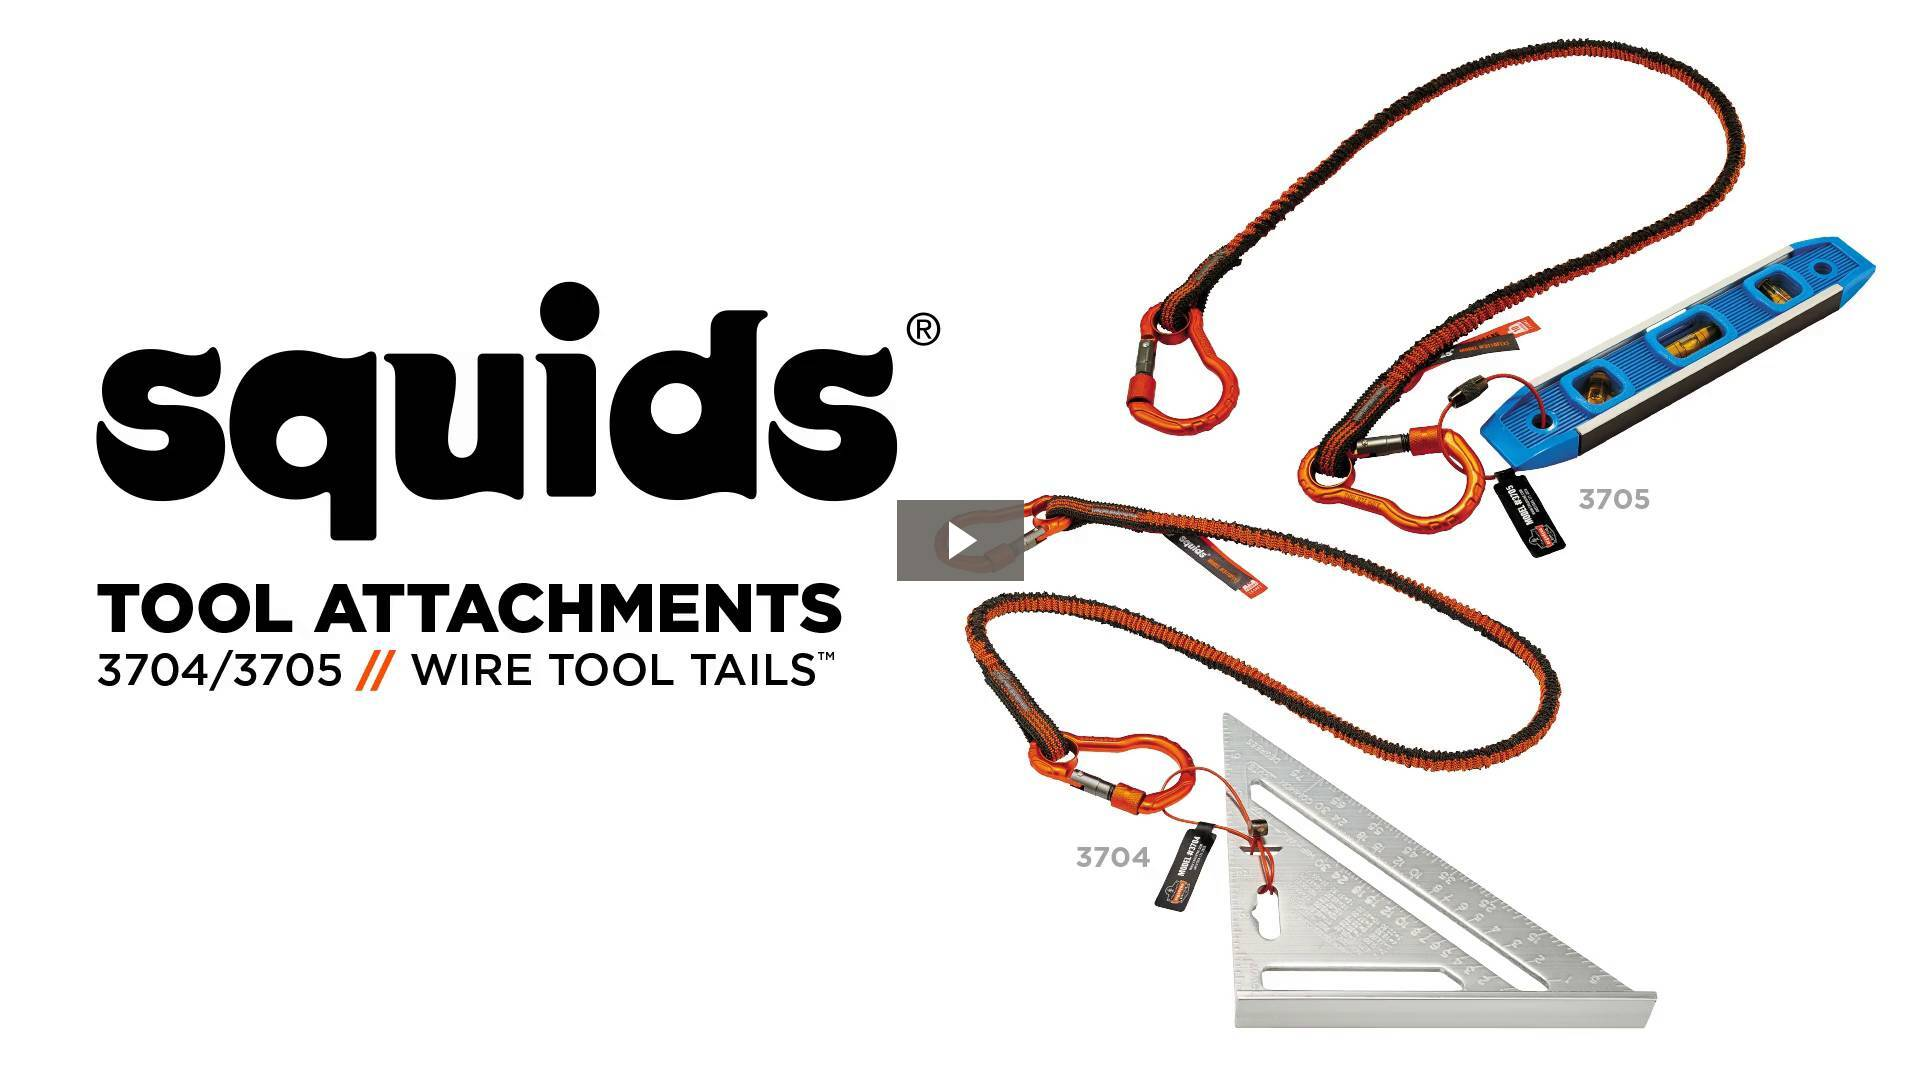 Ergodyne Product Video - Squids<sup>®</sup> 3705 Wire Tool Attachment - Screw Gate Tool Tail<sup>™</sup> - 3lbs (6-Pack)